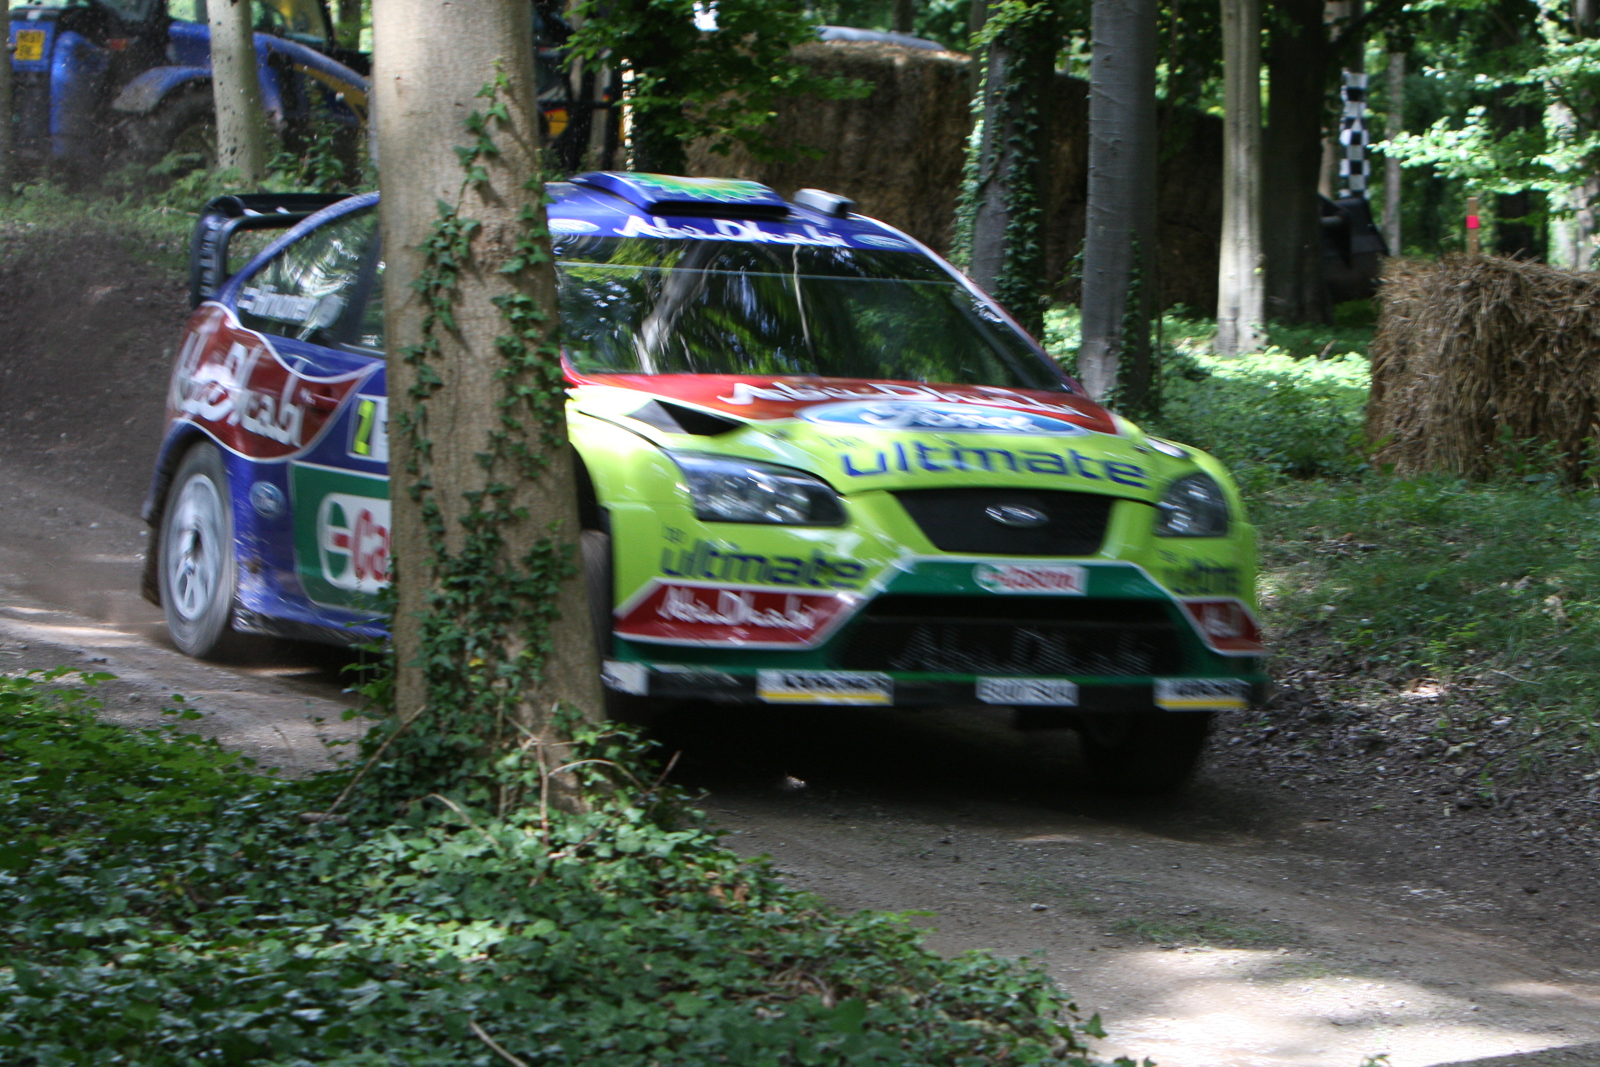 20080711 - Goodwood Festival of Speed -080711 -018